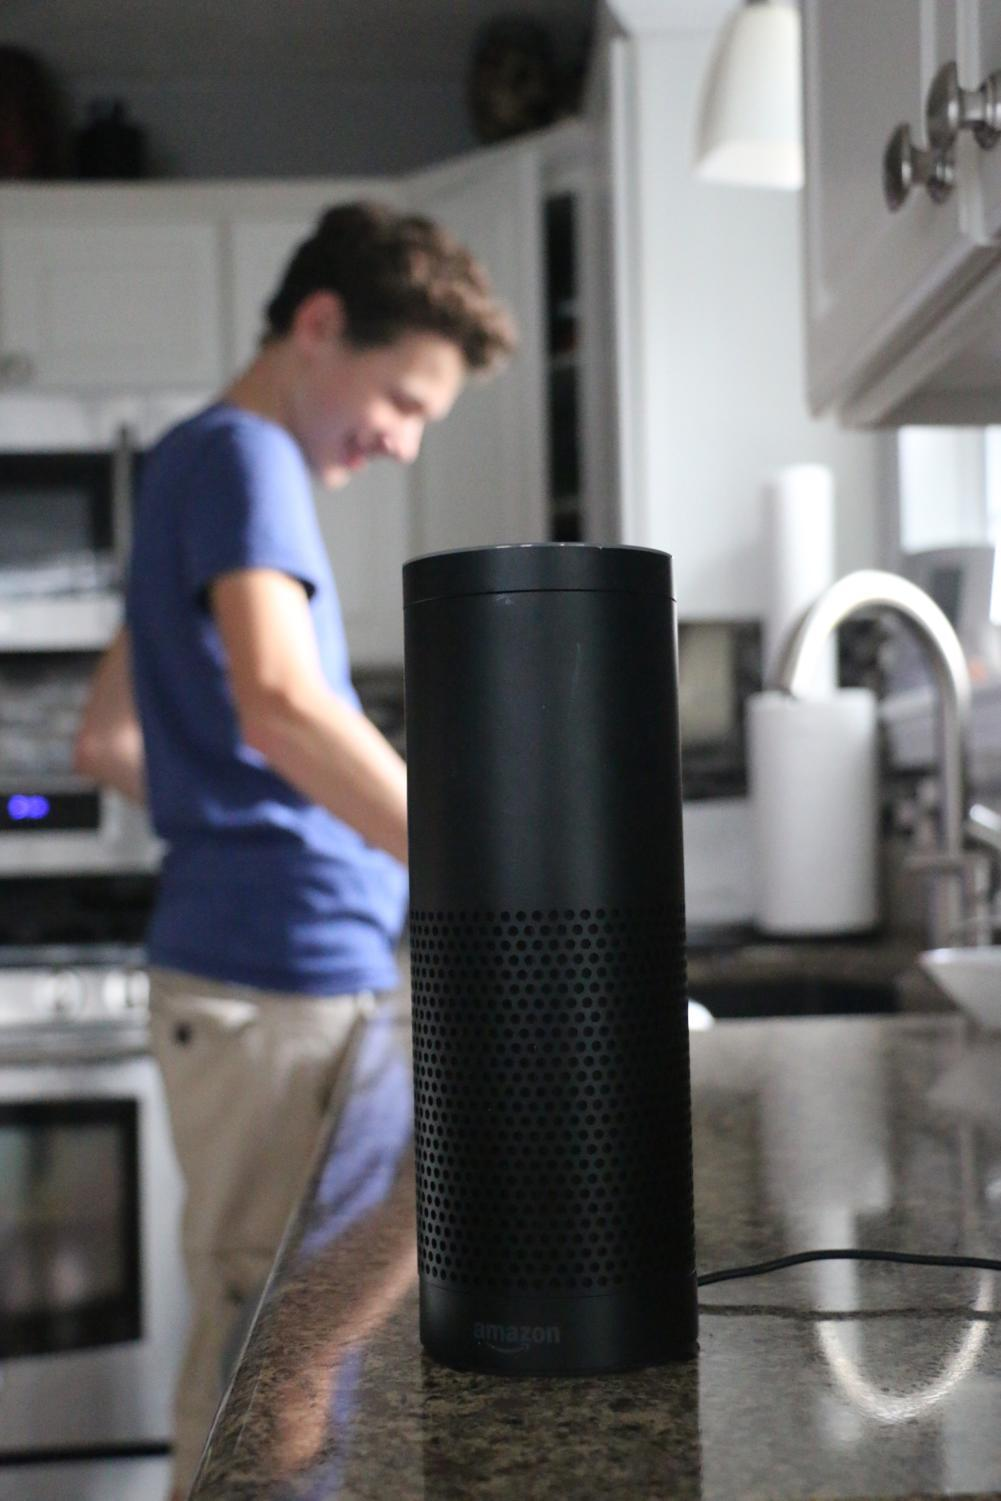 Sophomore Nathan Willman does household chores with Alexa by his side. Willman said he believes the new technology provides a new frontier of technology.